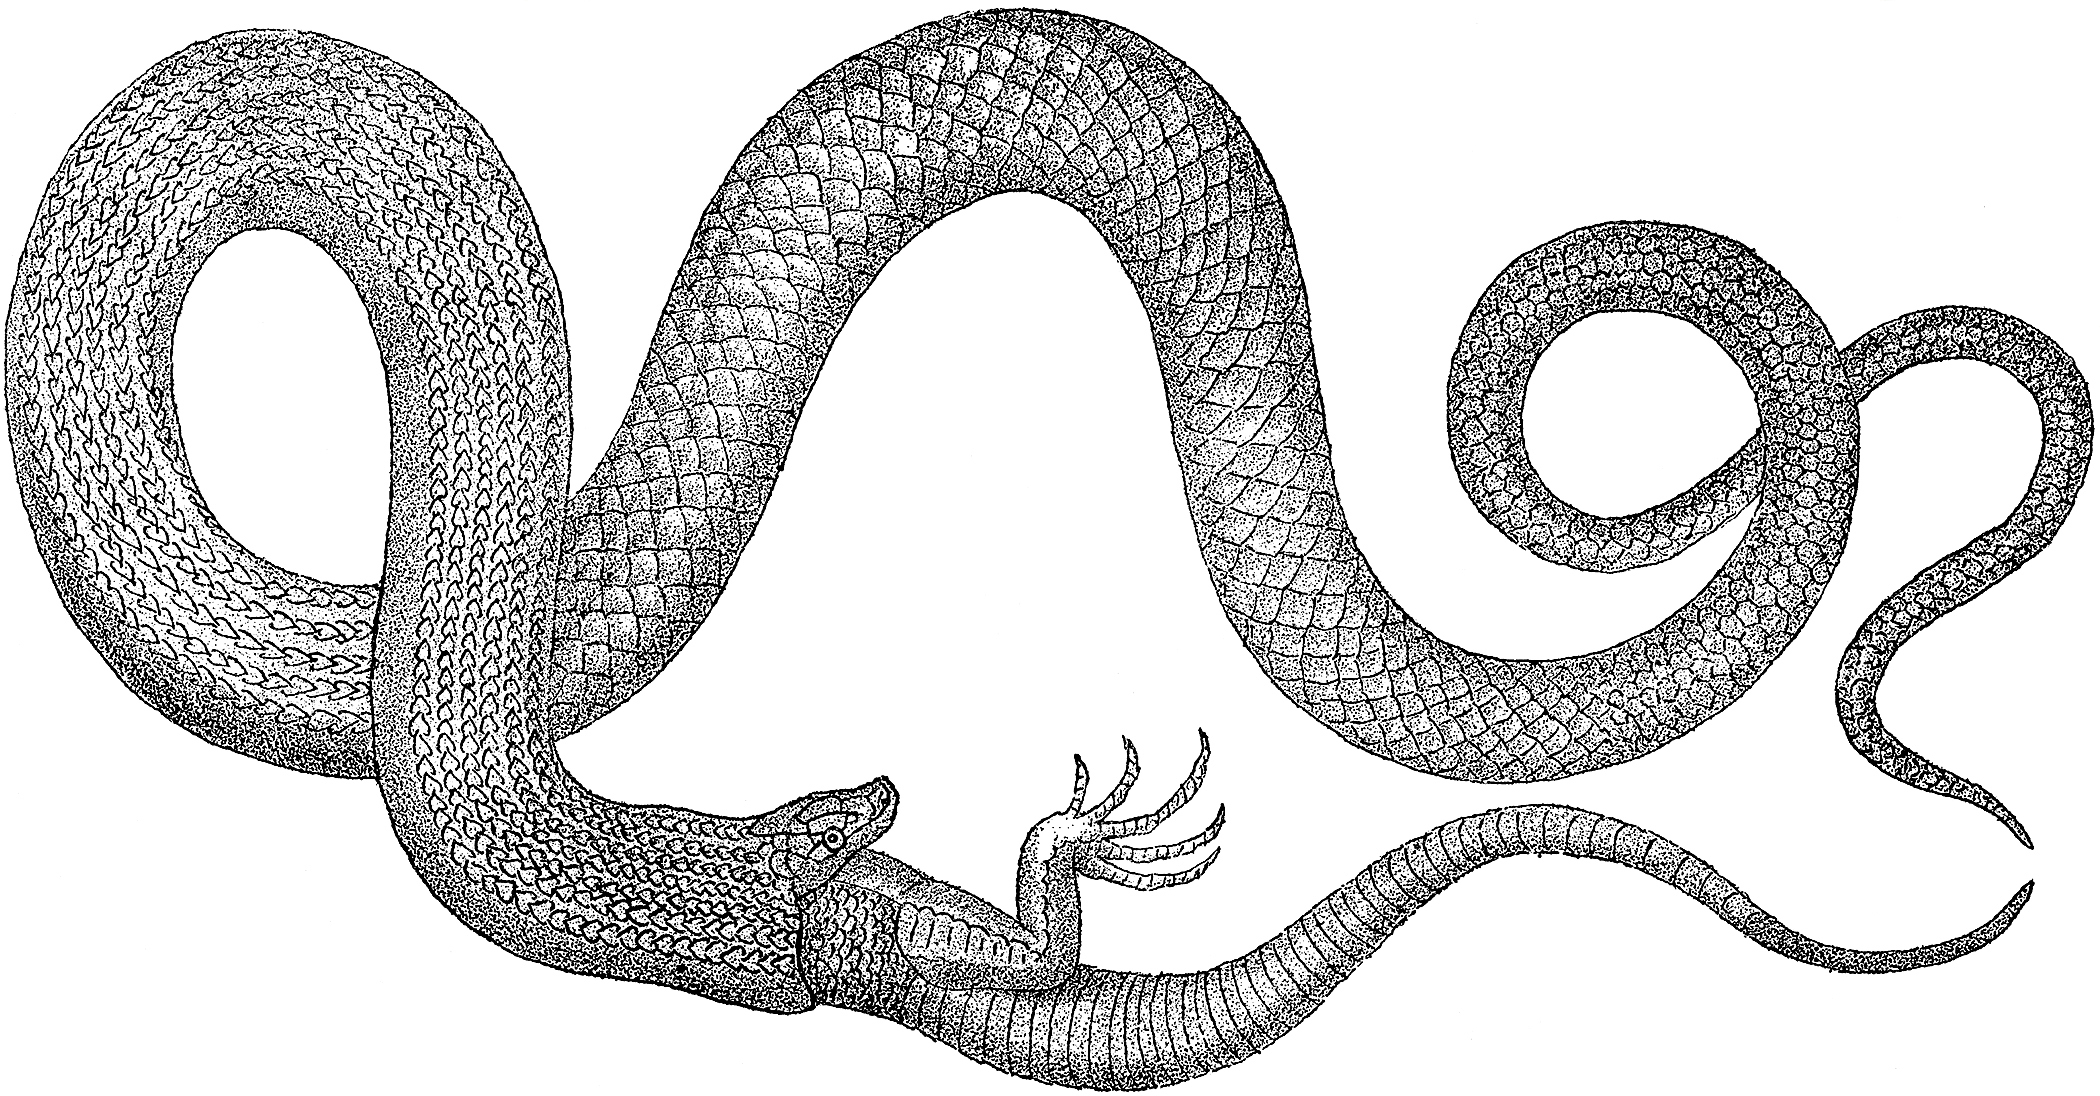 Early Vintage Snake Images.